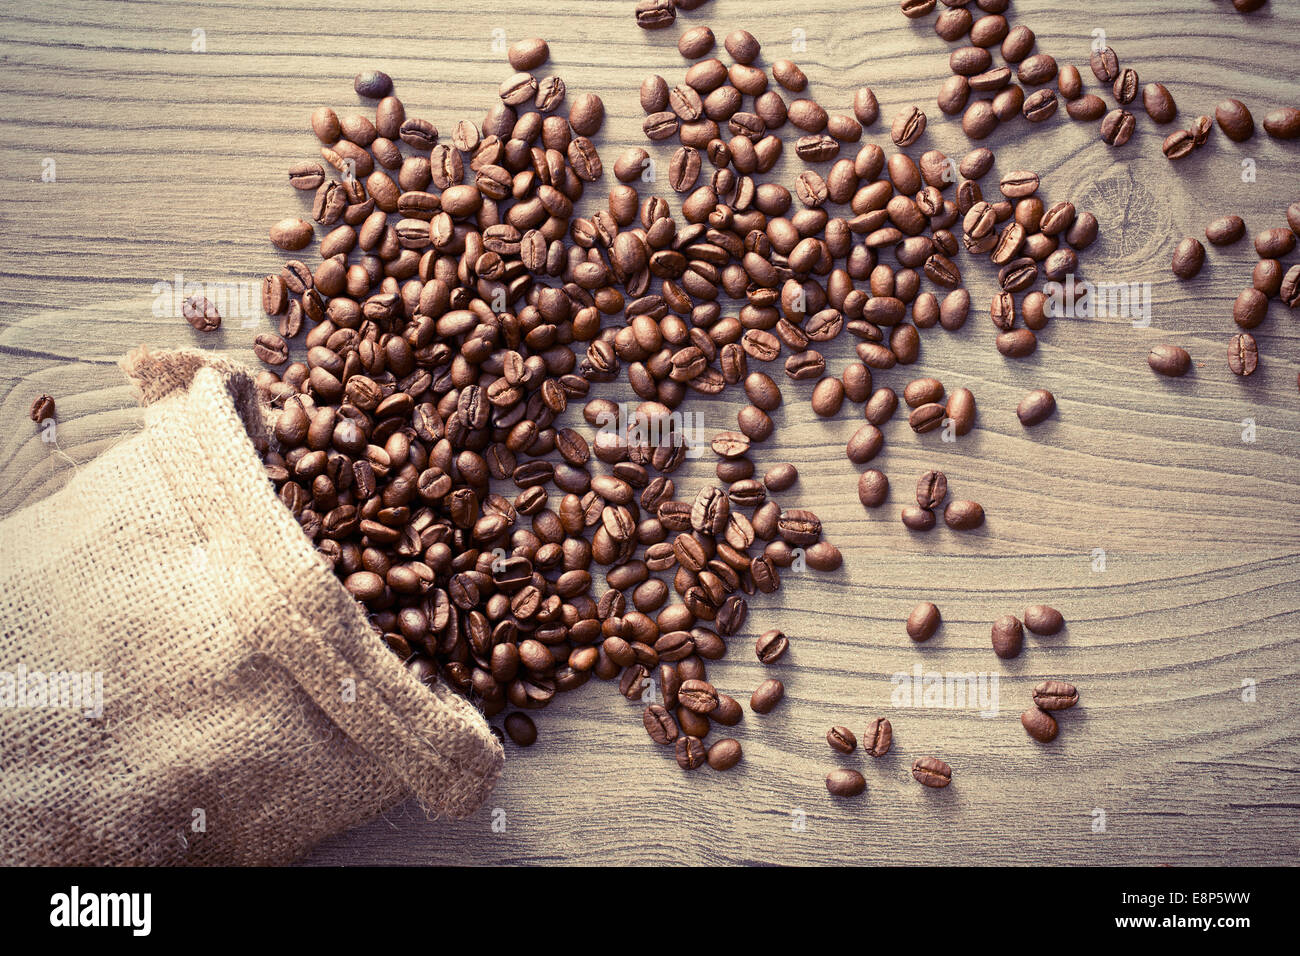 the coffee beans spill out of the sack - Stock Image